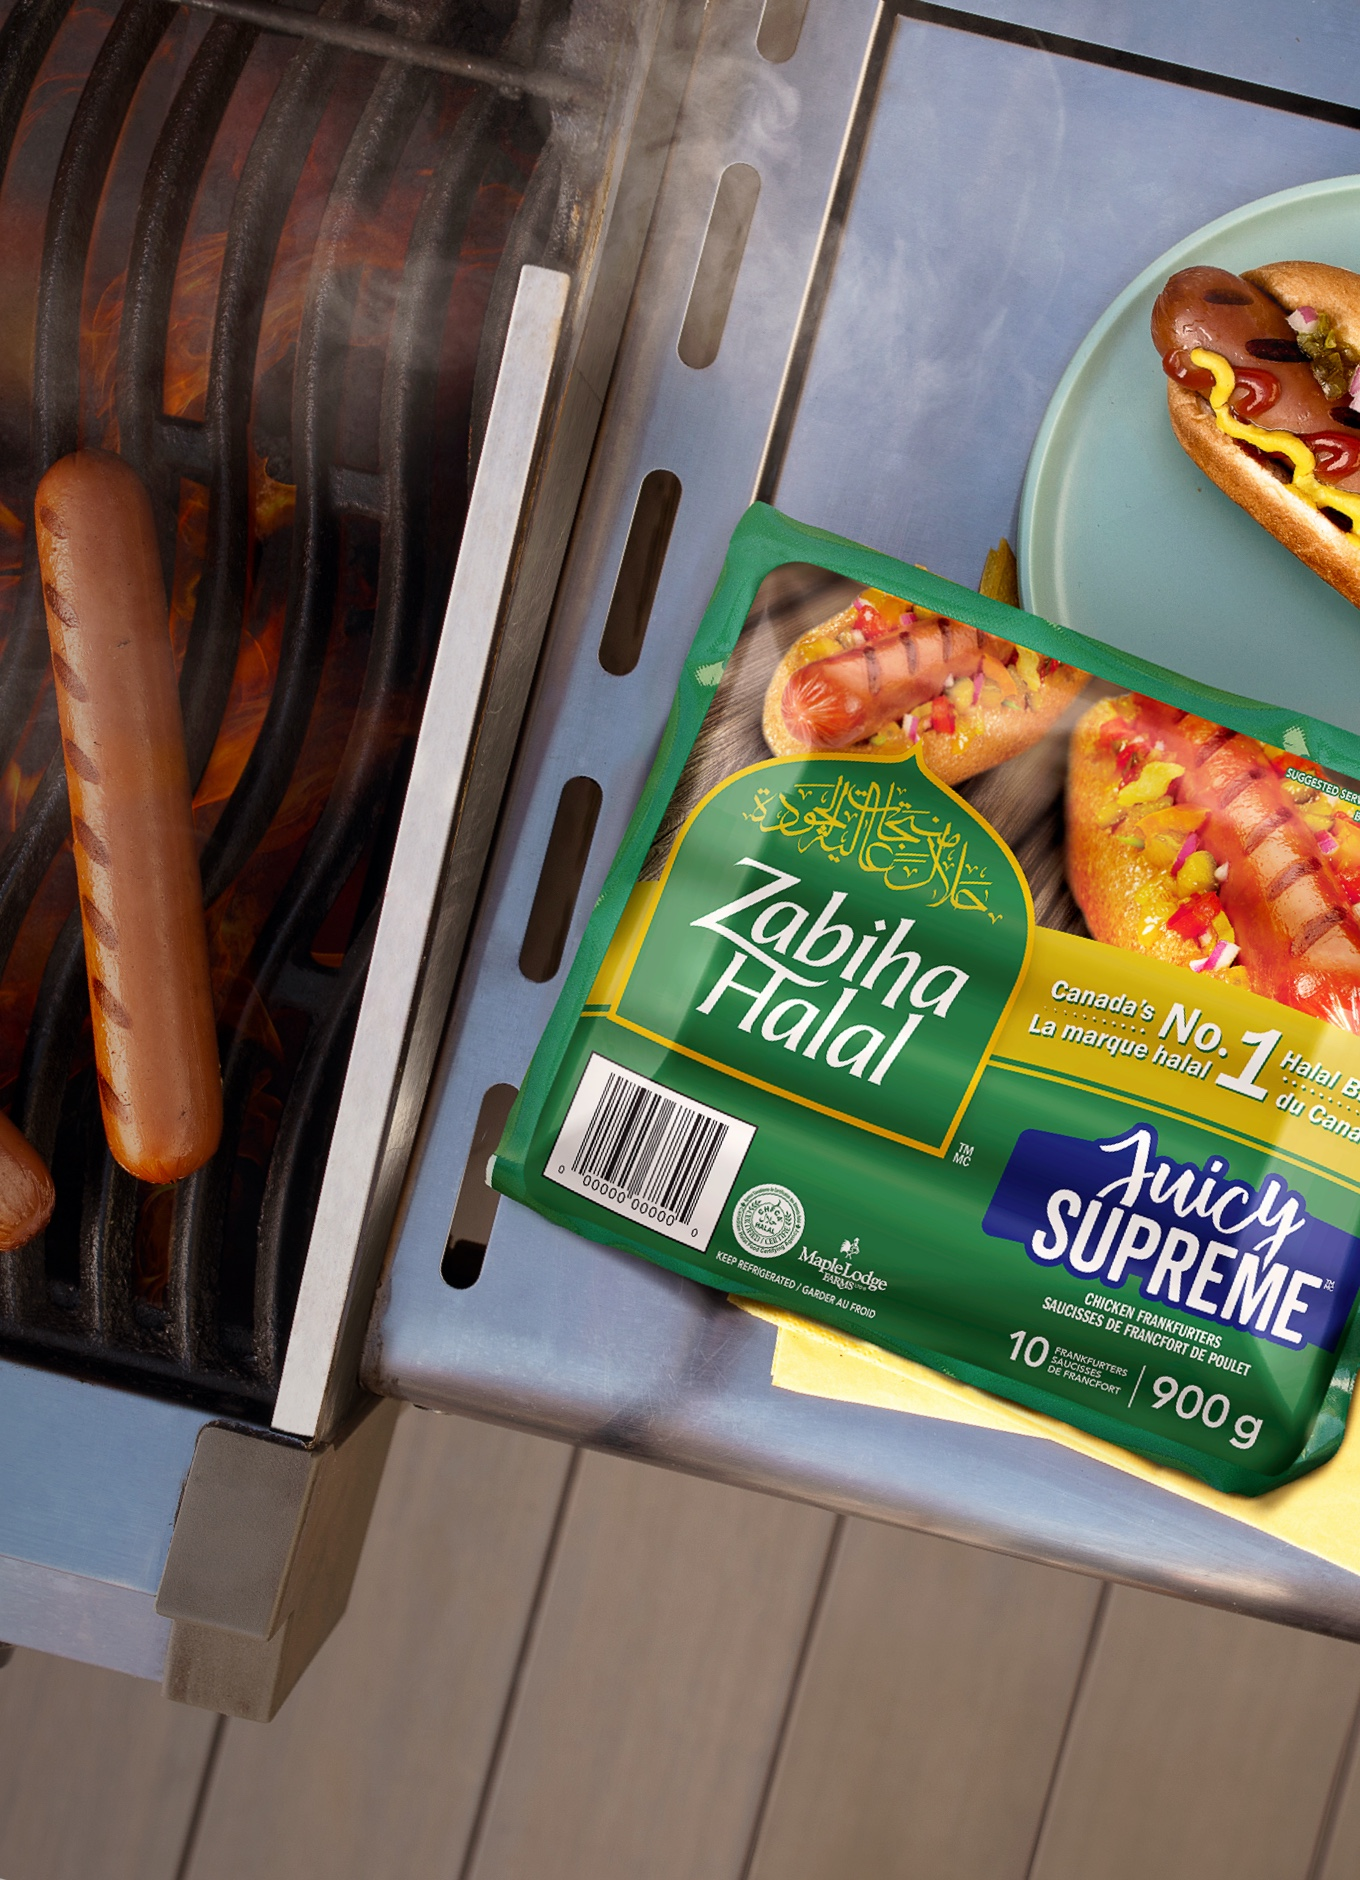 A package of Zabiha Halal Juicy Supreme Franks on a barbecue